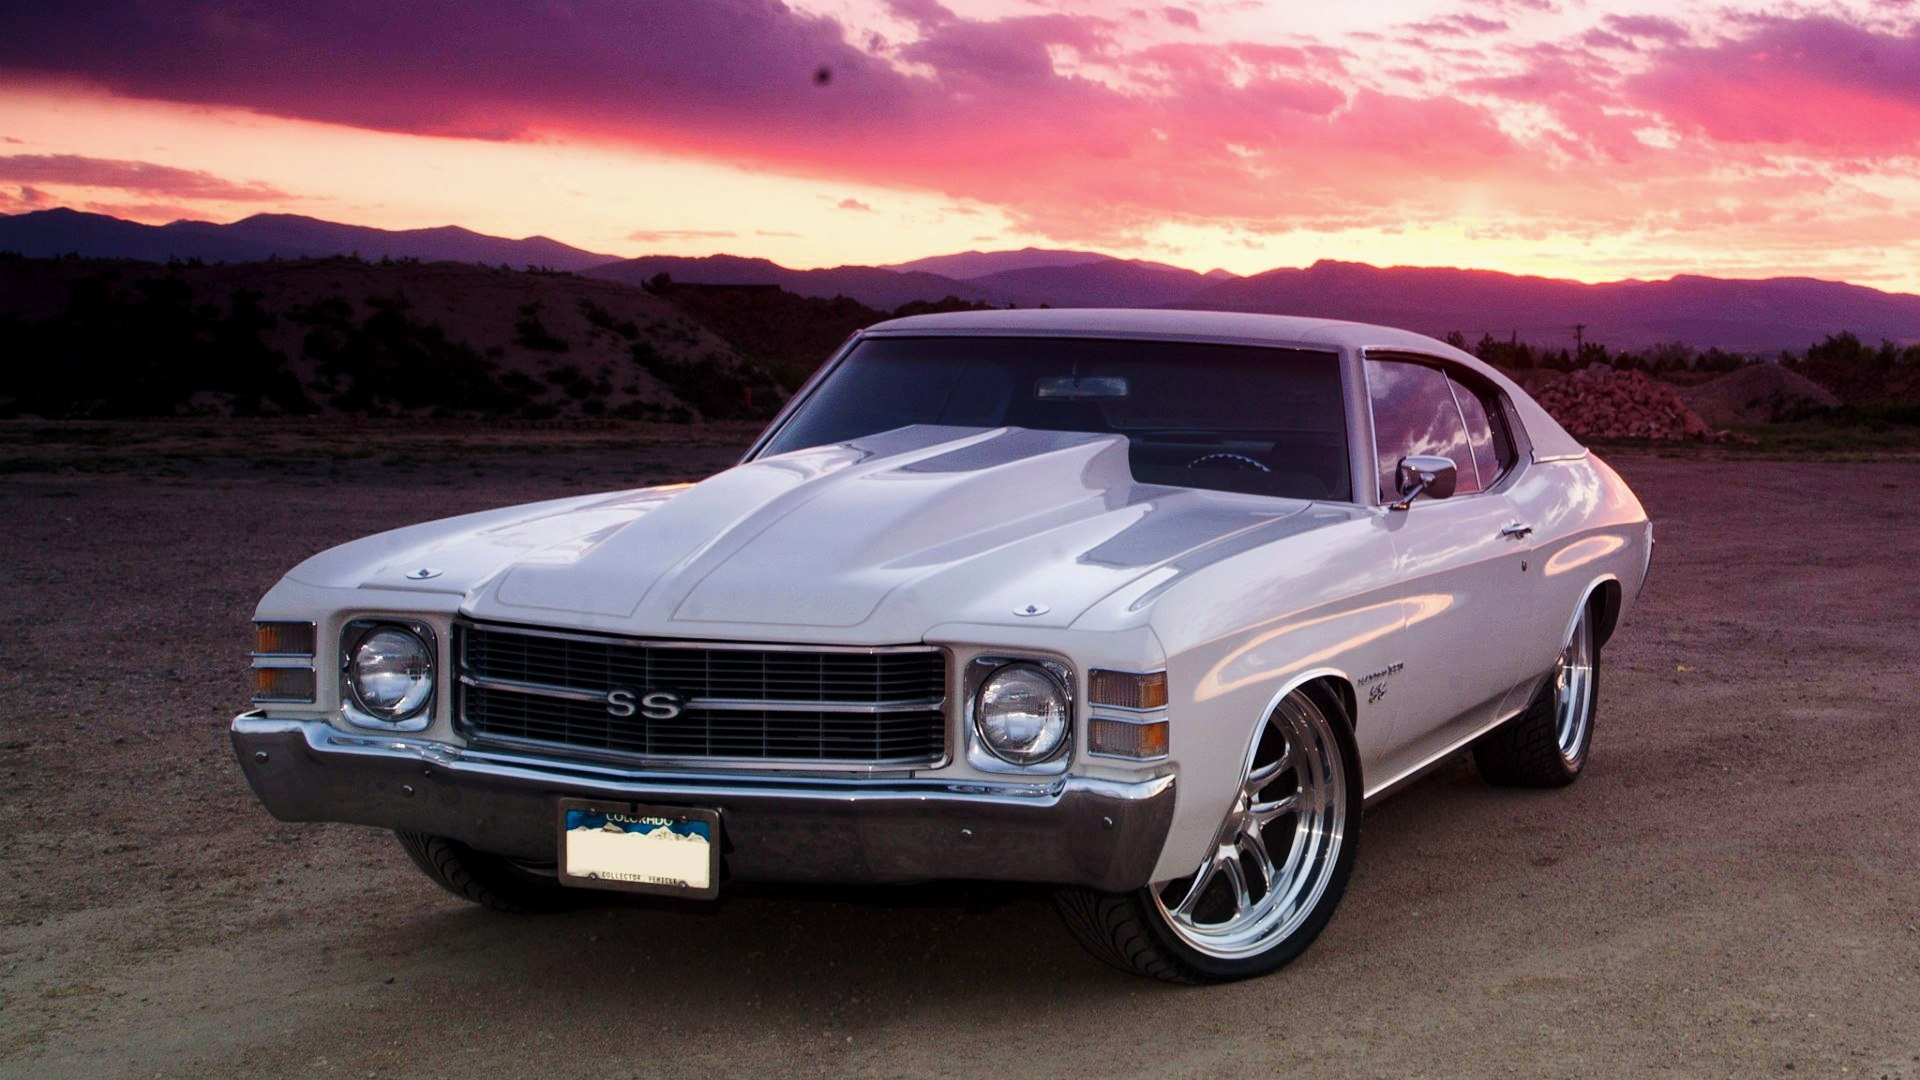 Classic Old Car Wallpapers 1600x900 Wallpaper Chevrolet Chevelle White Front View Ss